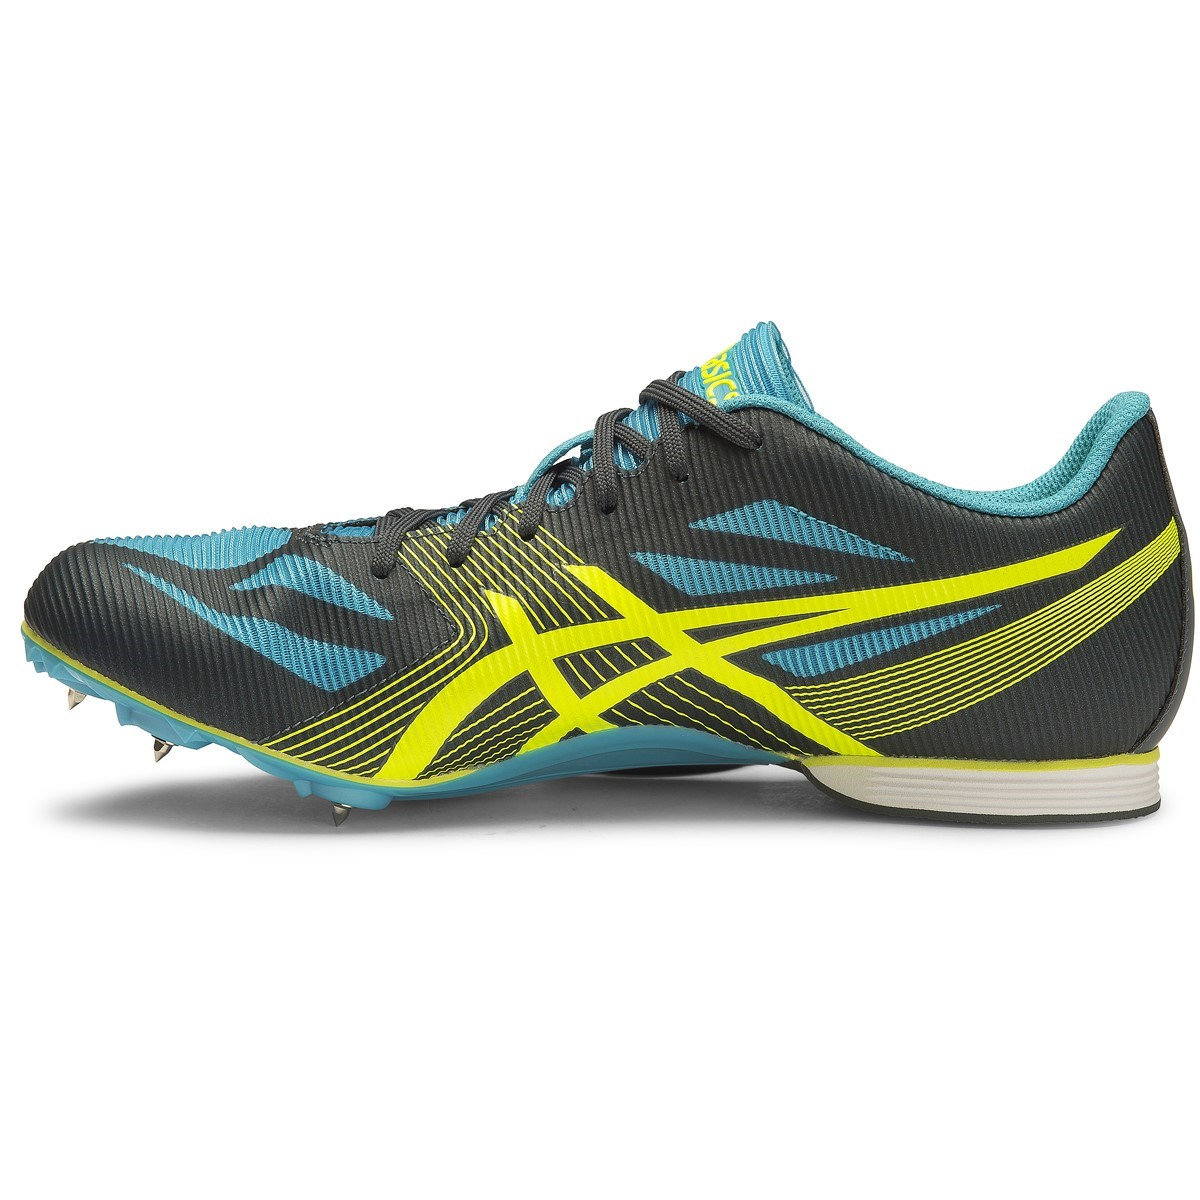 Asics Hyper MD 6 - Mens Middle Distance Track Spikes - Dark Slate/Flash  Yellow